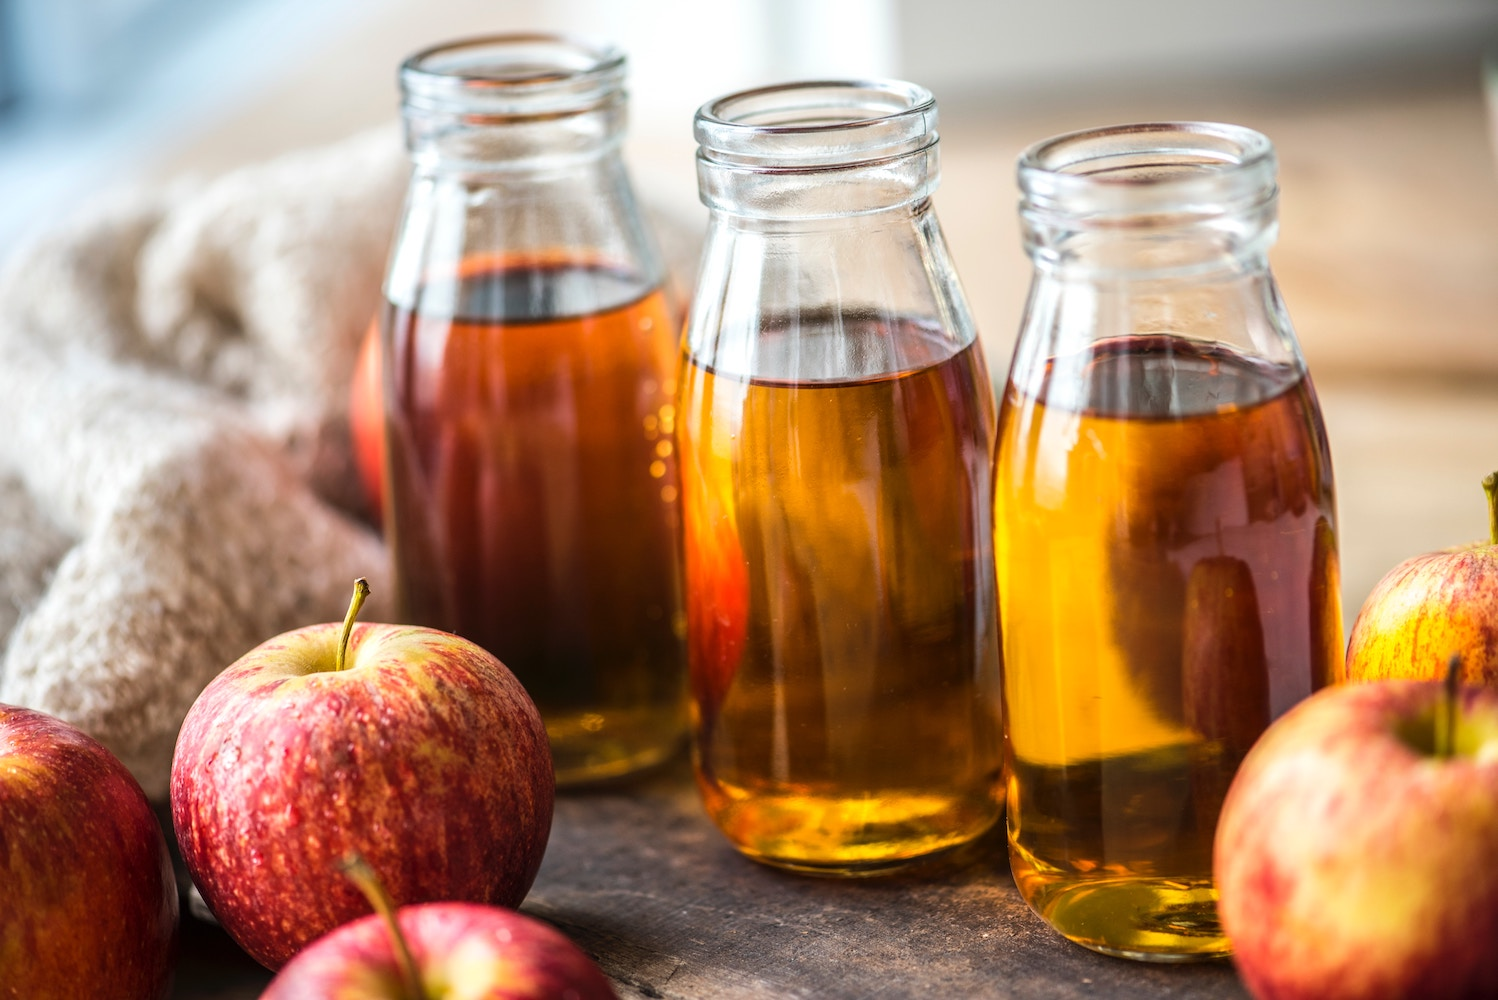 Apple Cider Vinegar to fight Bacterial Vaginosis